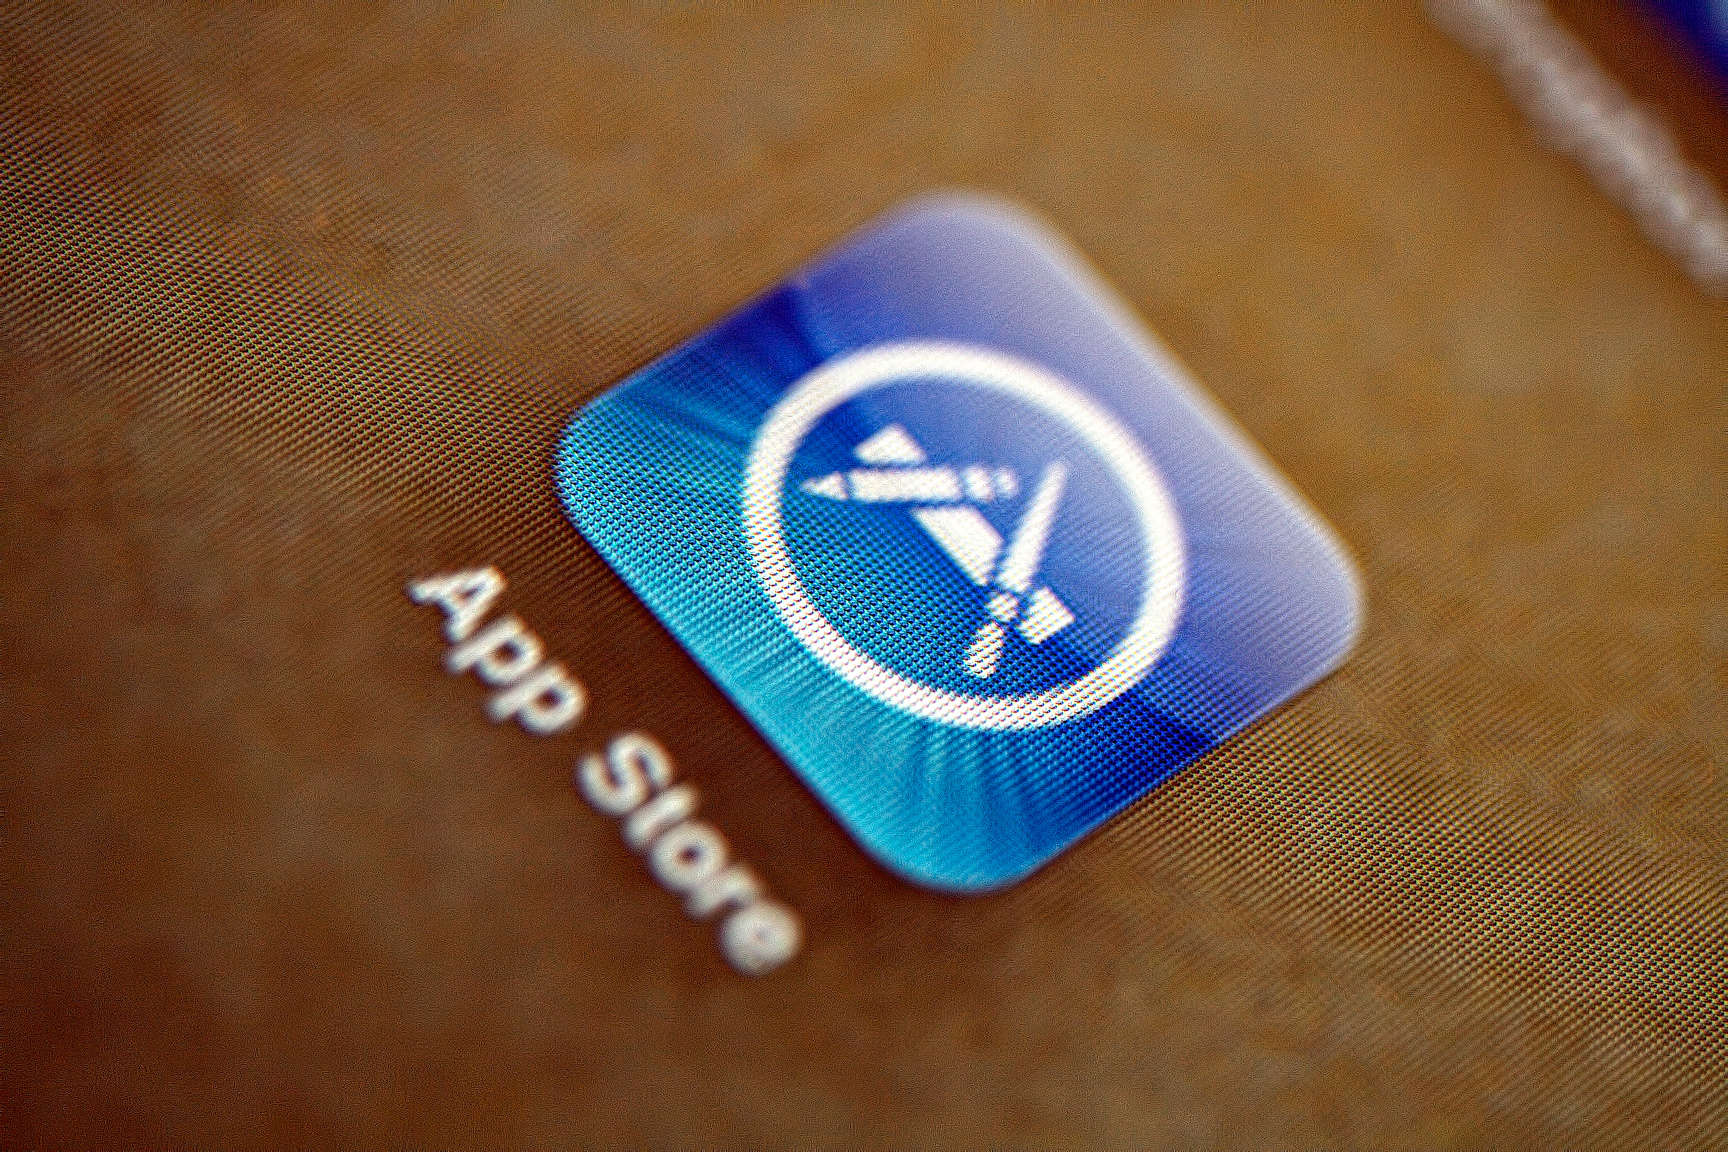 Apple rejects more than a third of App Store submissions